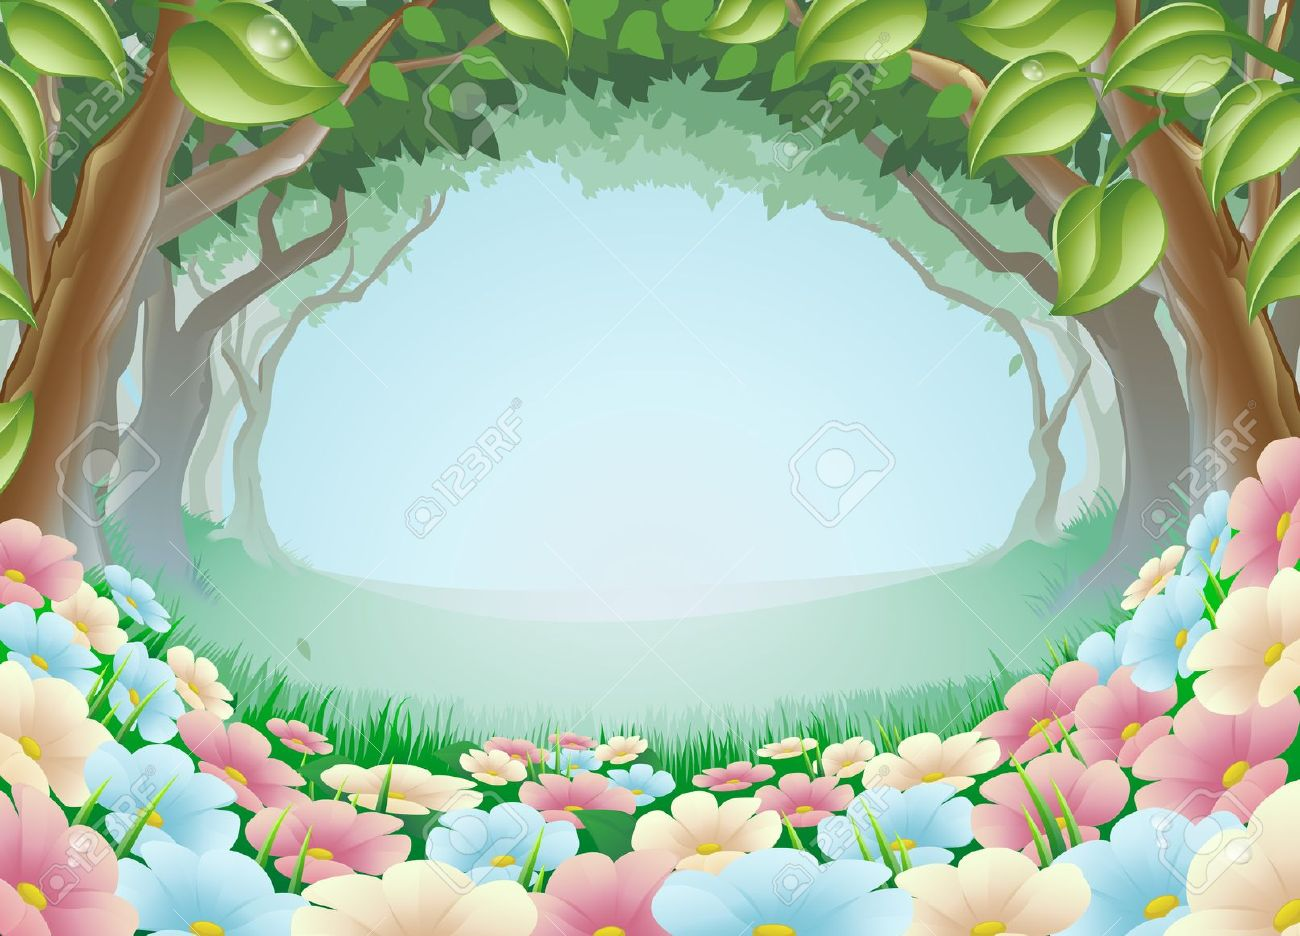 A Beautiful Fantasy Woodland Forest Scene Illustration Royalty.